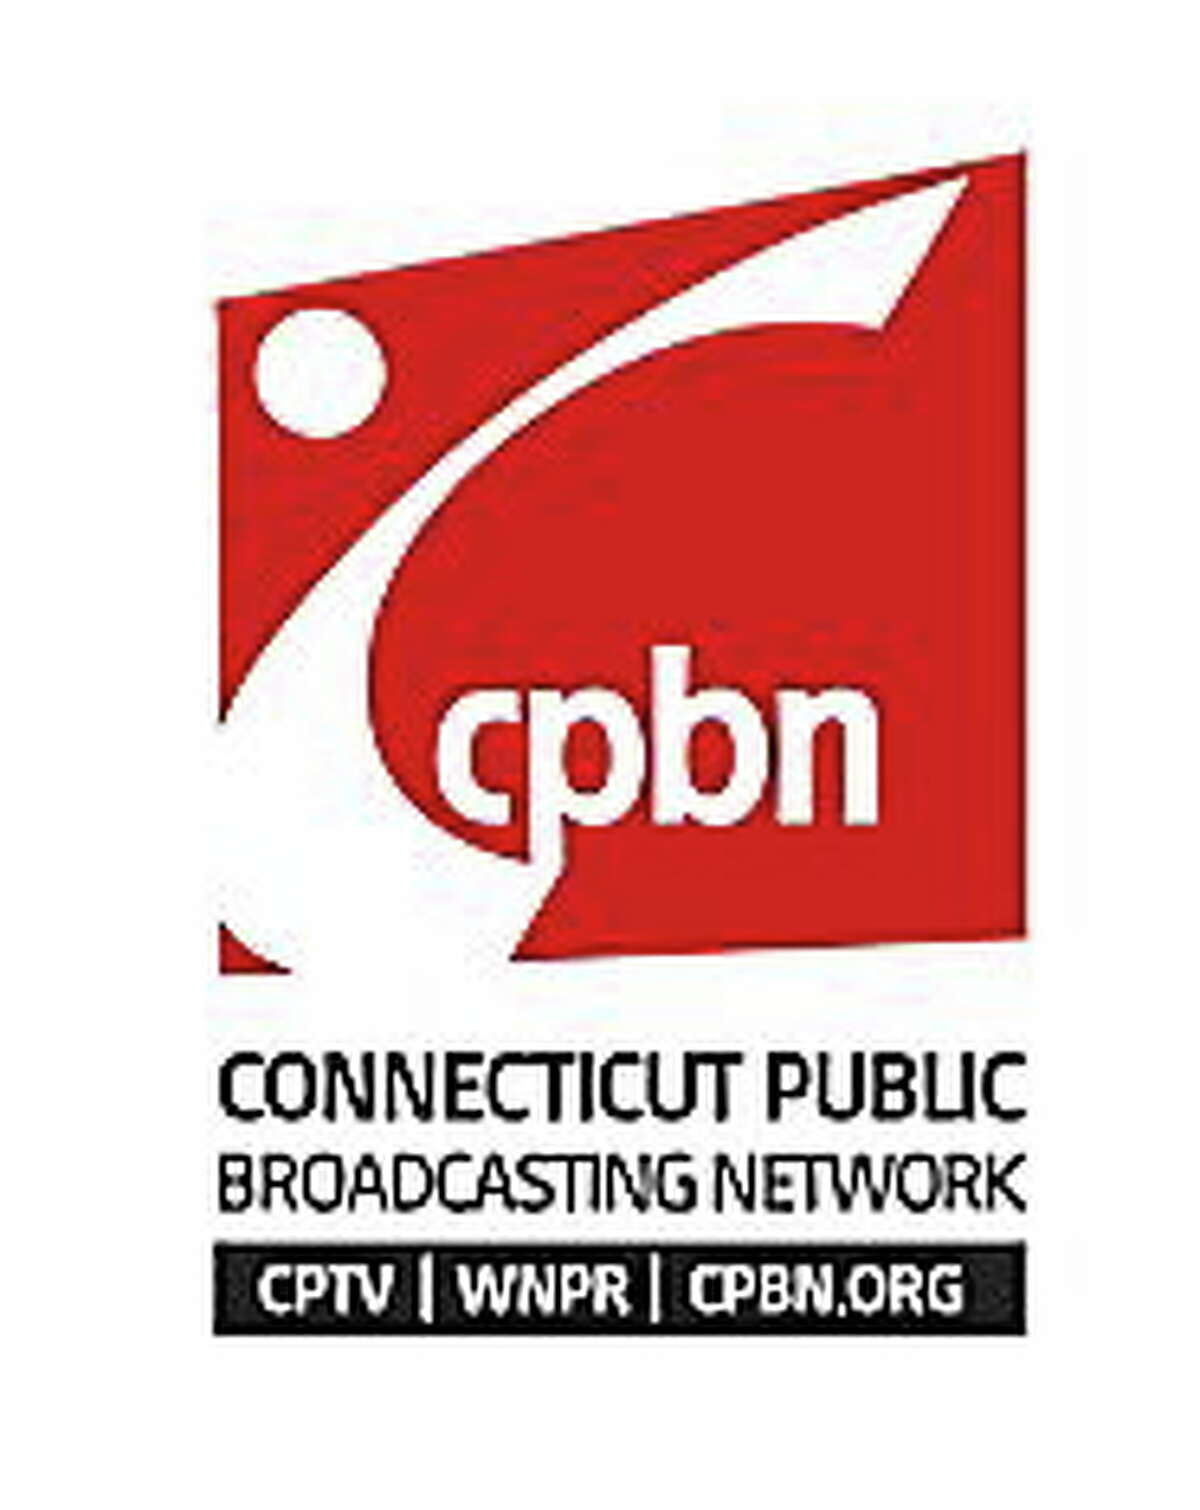 Logo for Connecticut Public Broadcasting Network